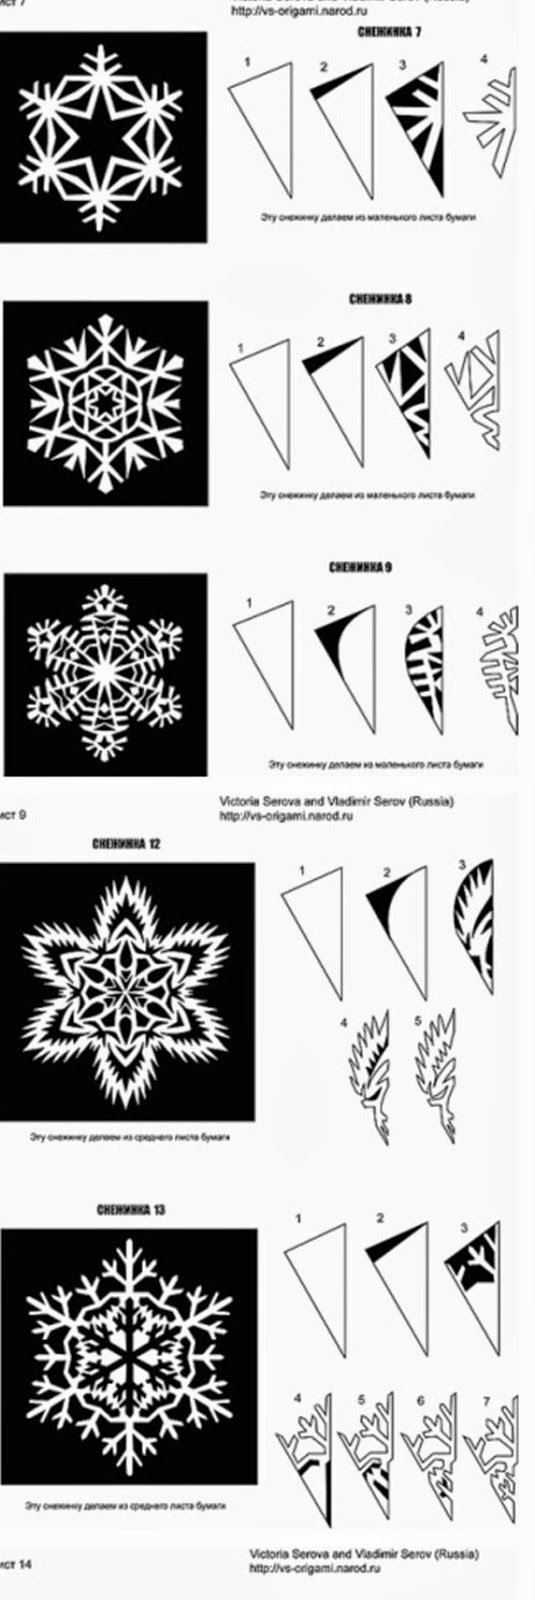 34 Snowflakes Templates  -  http://eng.ohmyfiesta.com/2014/07/diy-frozen-34-snowflakes-templates.html   12.19.14